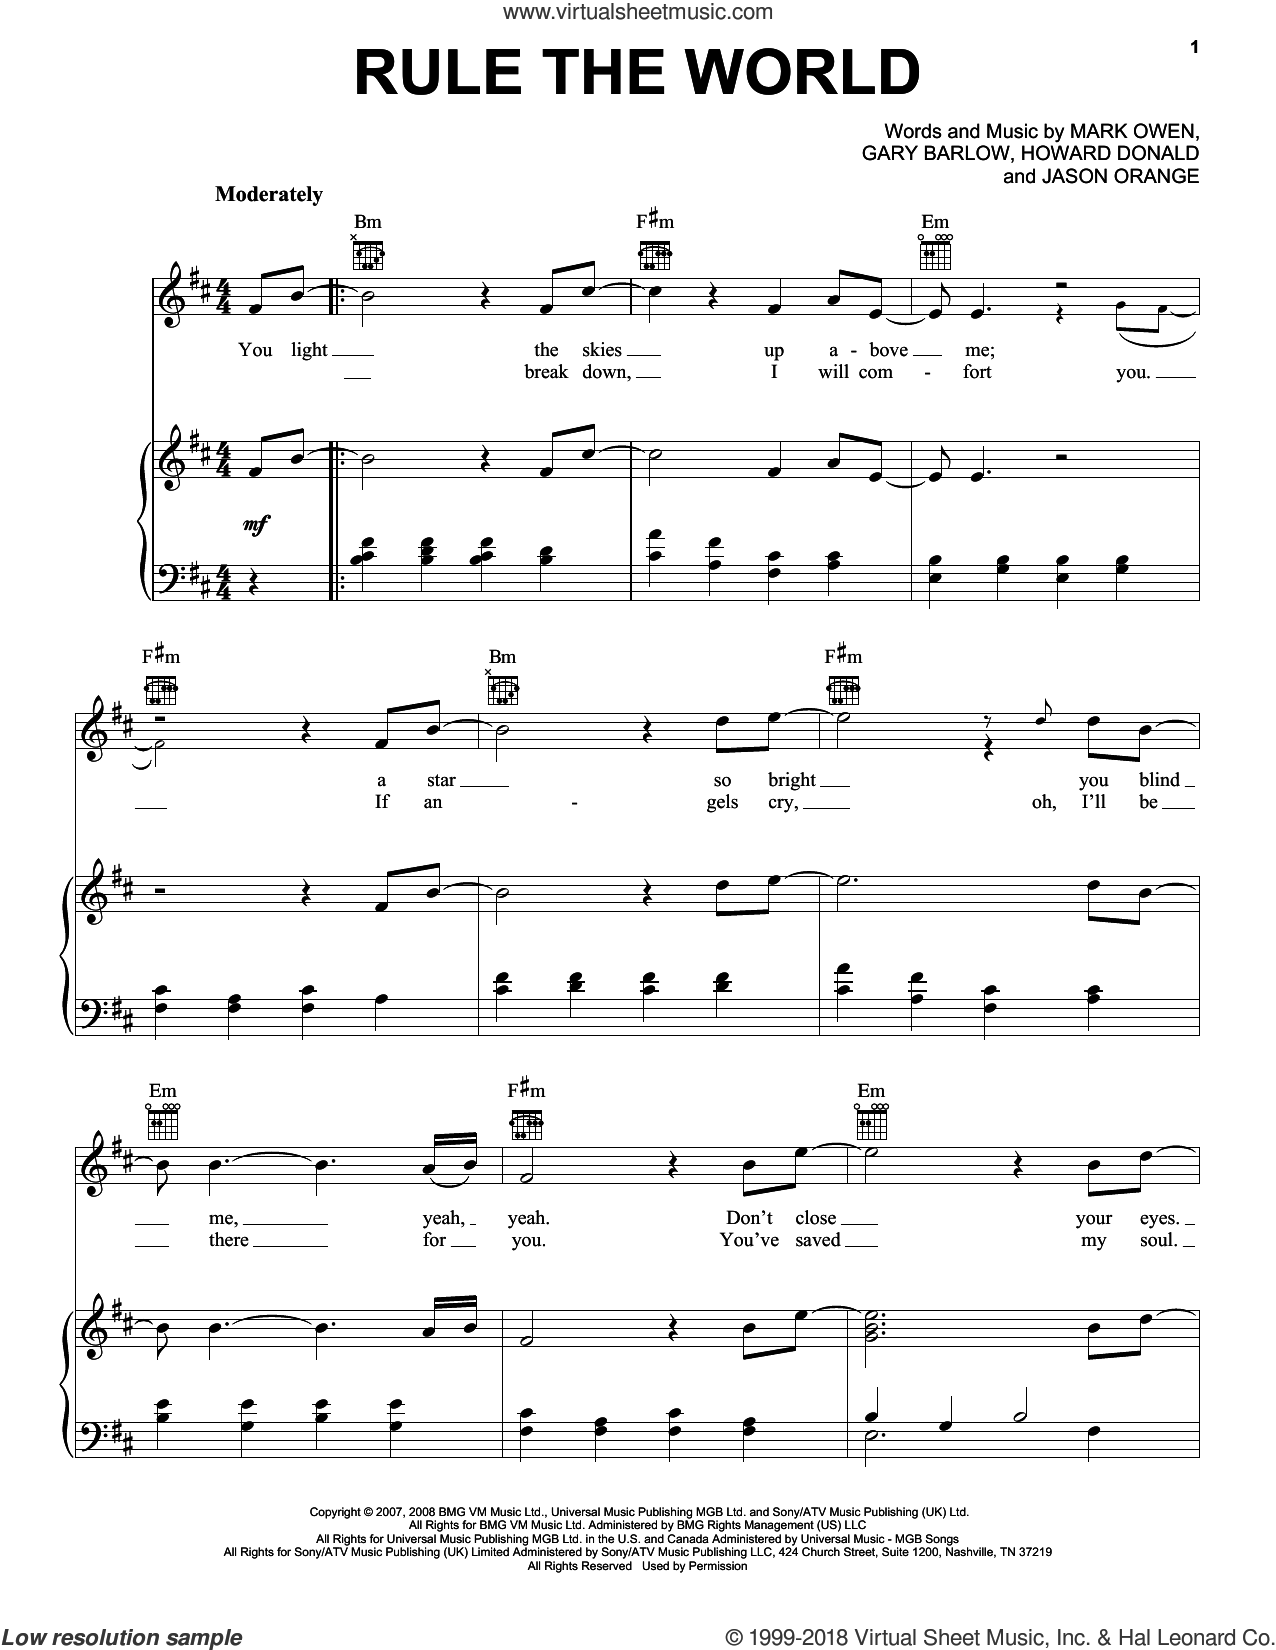 Rule The World sheet music for voice, piano or guitar by Take That, Gary Barlow, Howard Donald, Jason Orange and Mark Owen, intermediate skill level